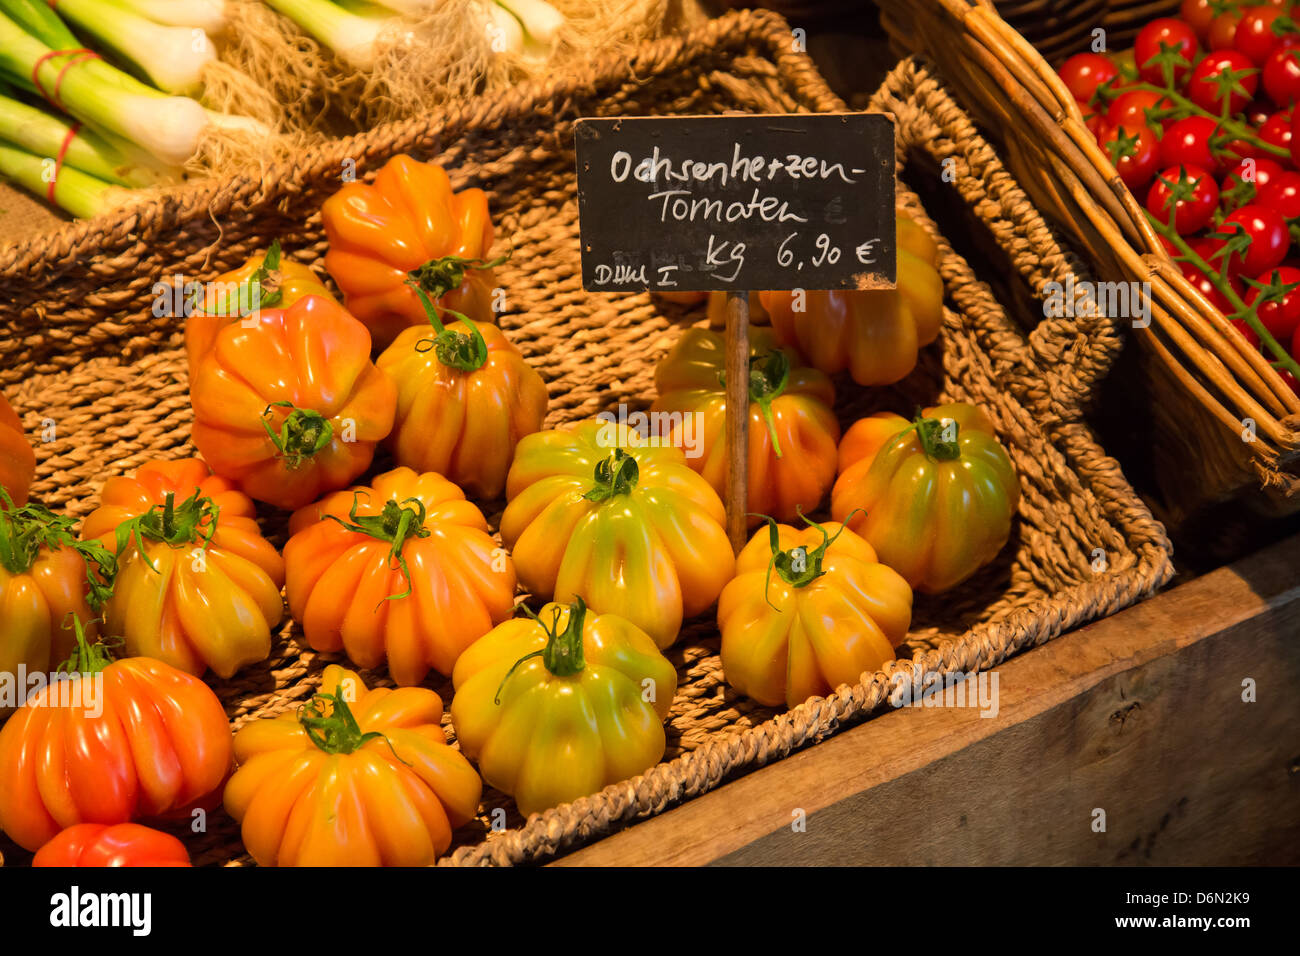 Herten, Germany shopping, tomatoes from the farm shop Stock Photo